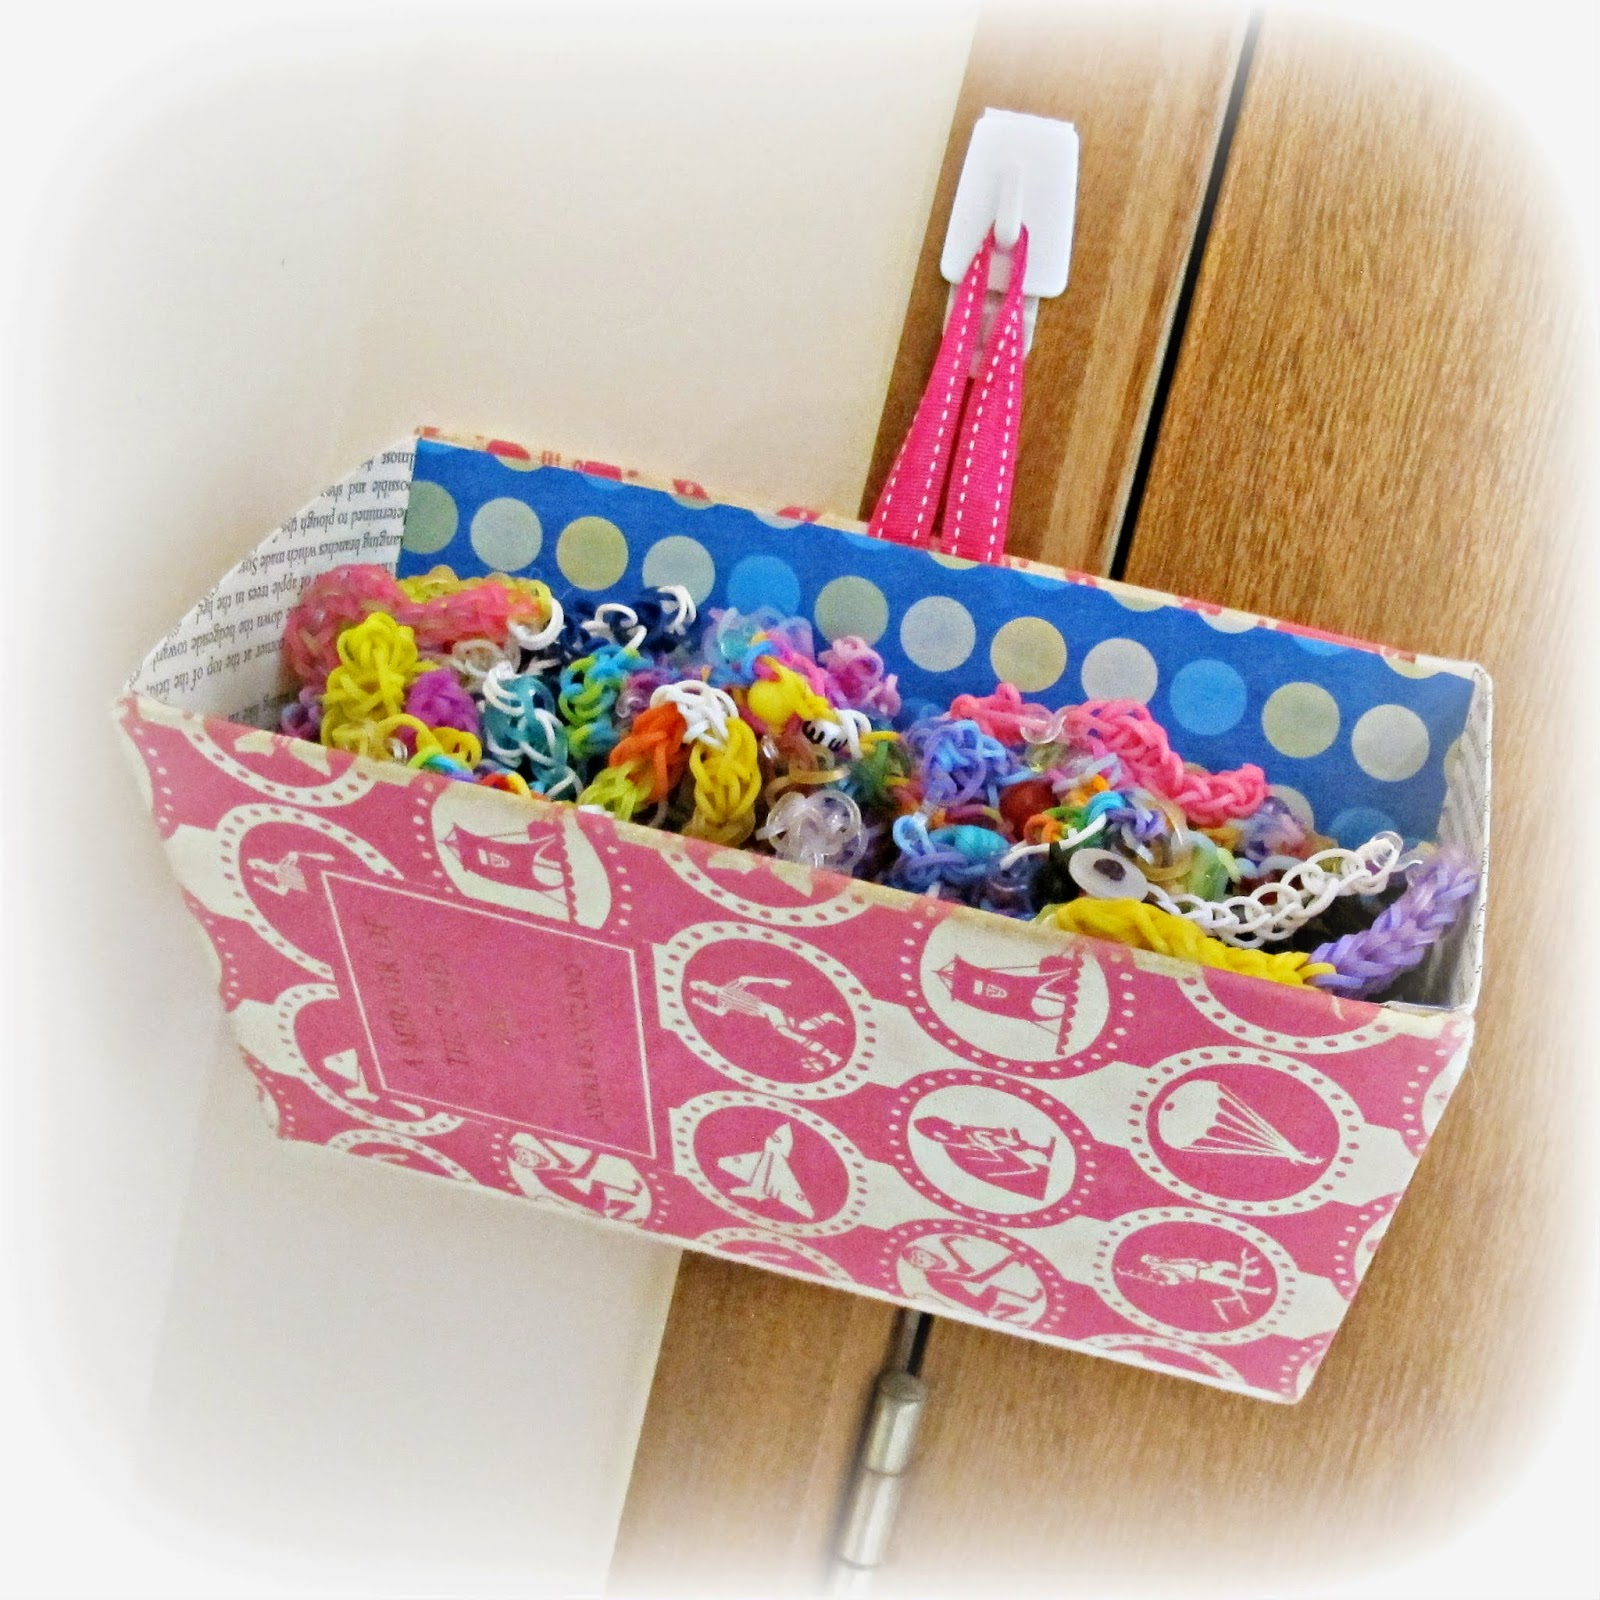 image wall pocket loom bands storage upcycled book caddy